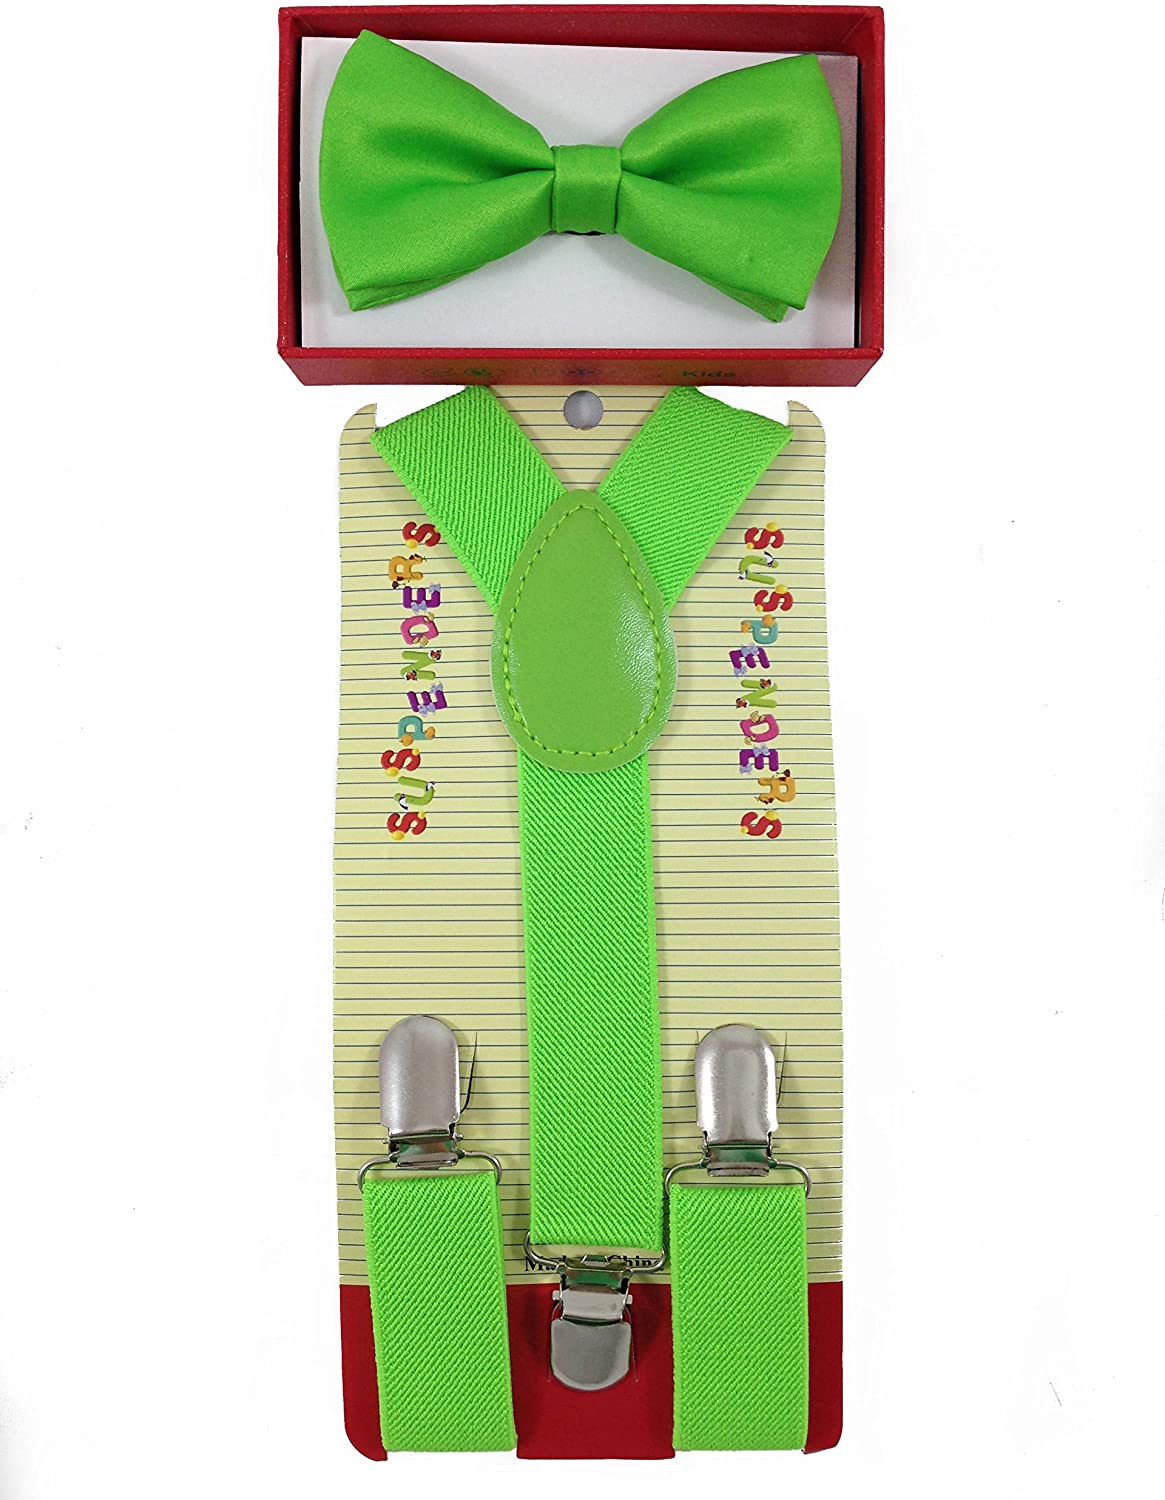 New Suspender Bow Tie Matching Colors Toddler Kids Boys Girls Child - Green